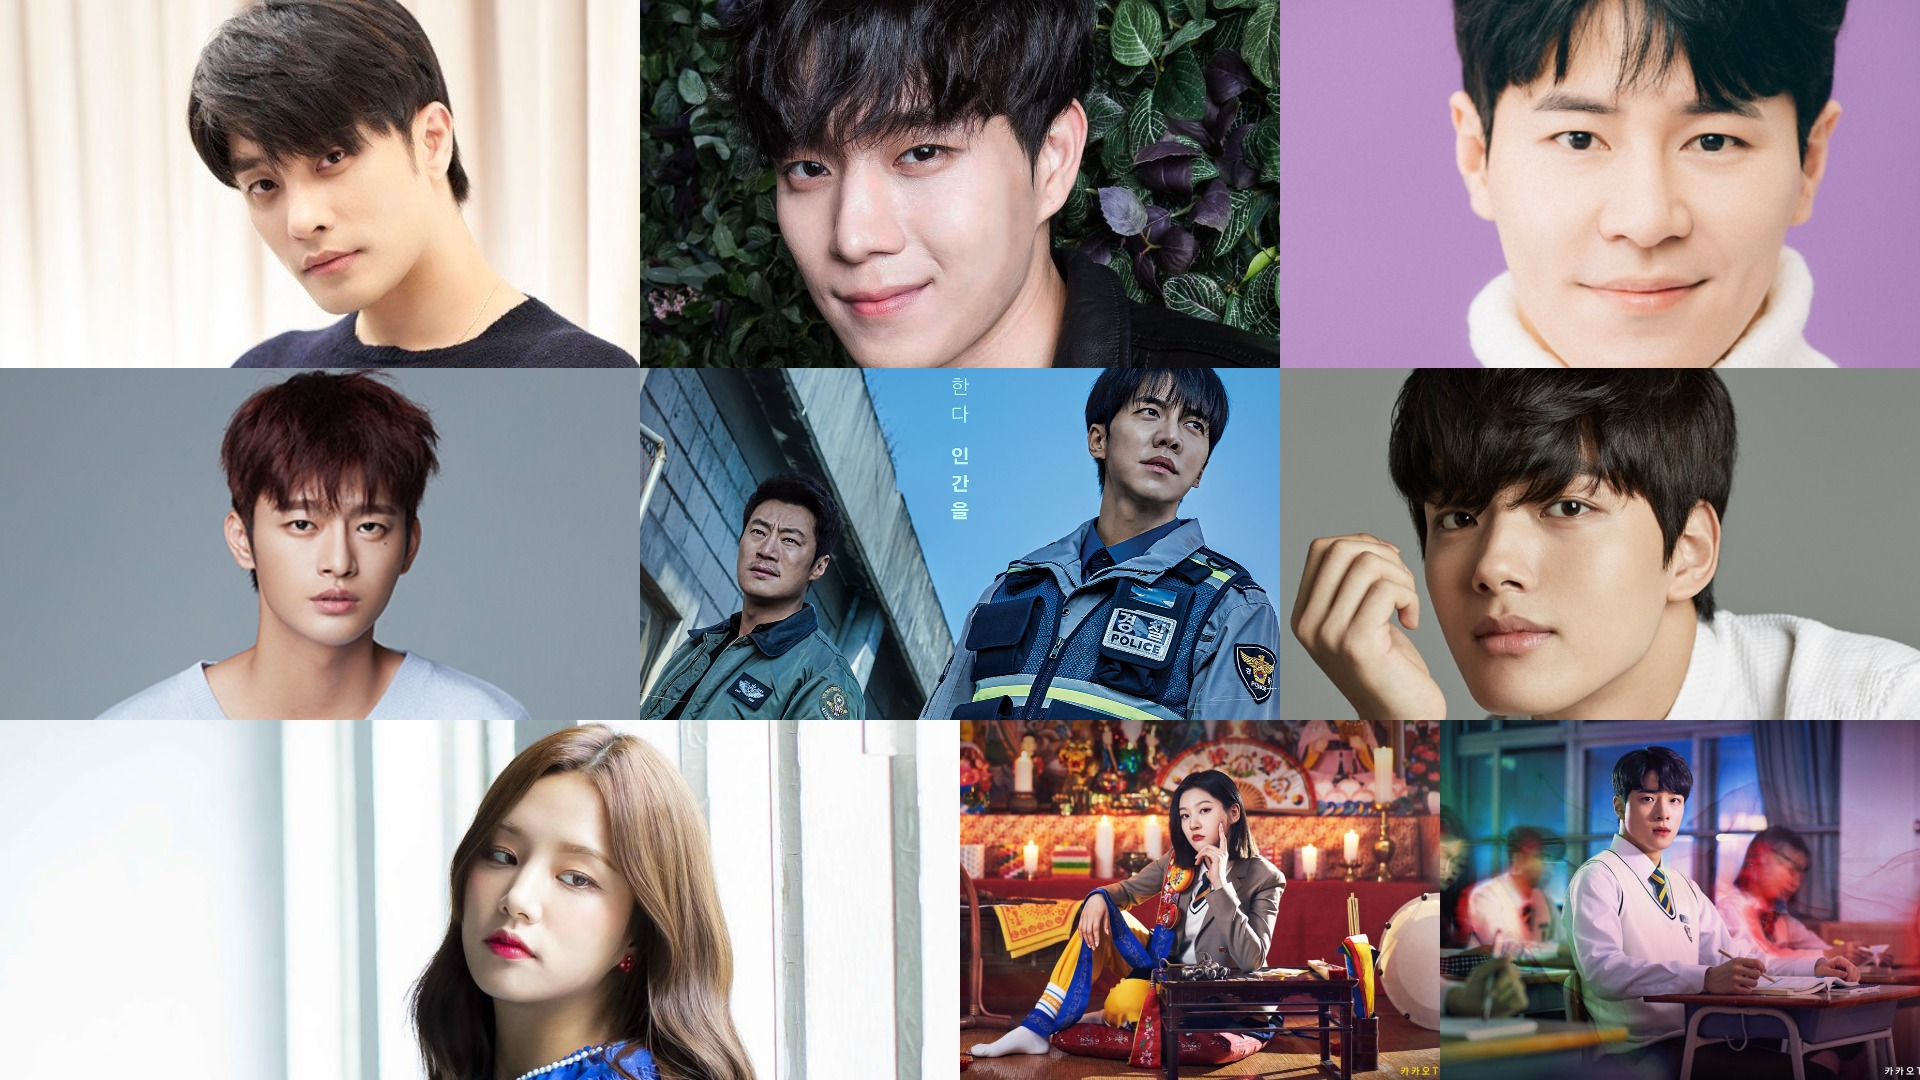 Sung Hoon, remake , Jane the Virgin, remake surcoreano, Kim Young Dae, School 2021, Shooting Star, Lee Kyu Hyung, Shall We Have a Cup of Coffee?, Seo In Guk, Mouse, Sèries Mania, Yeom Hye Ran, Yum Jung Ah, Cleaning Up, Yeo Jin Goo, Link: Eat and Love to Kill, Solbim, LABOUM, Idol: The Coup, Superior Shaman Ga Doo Shim